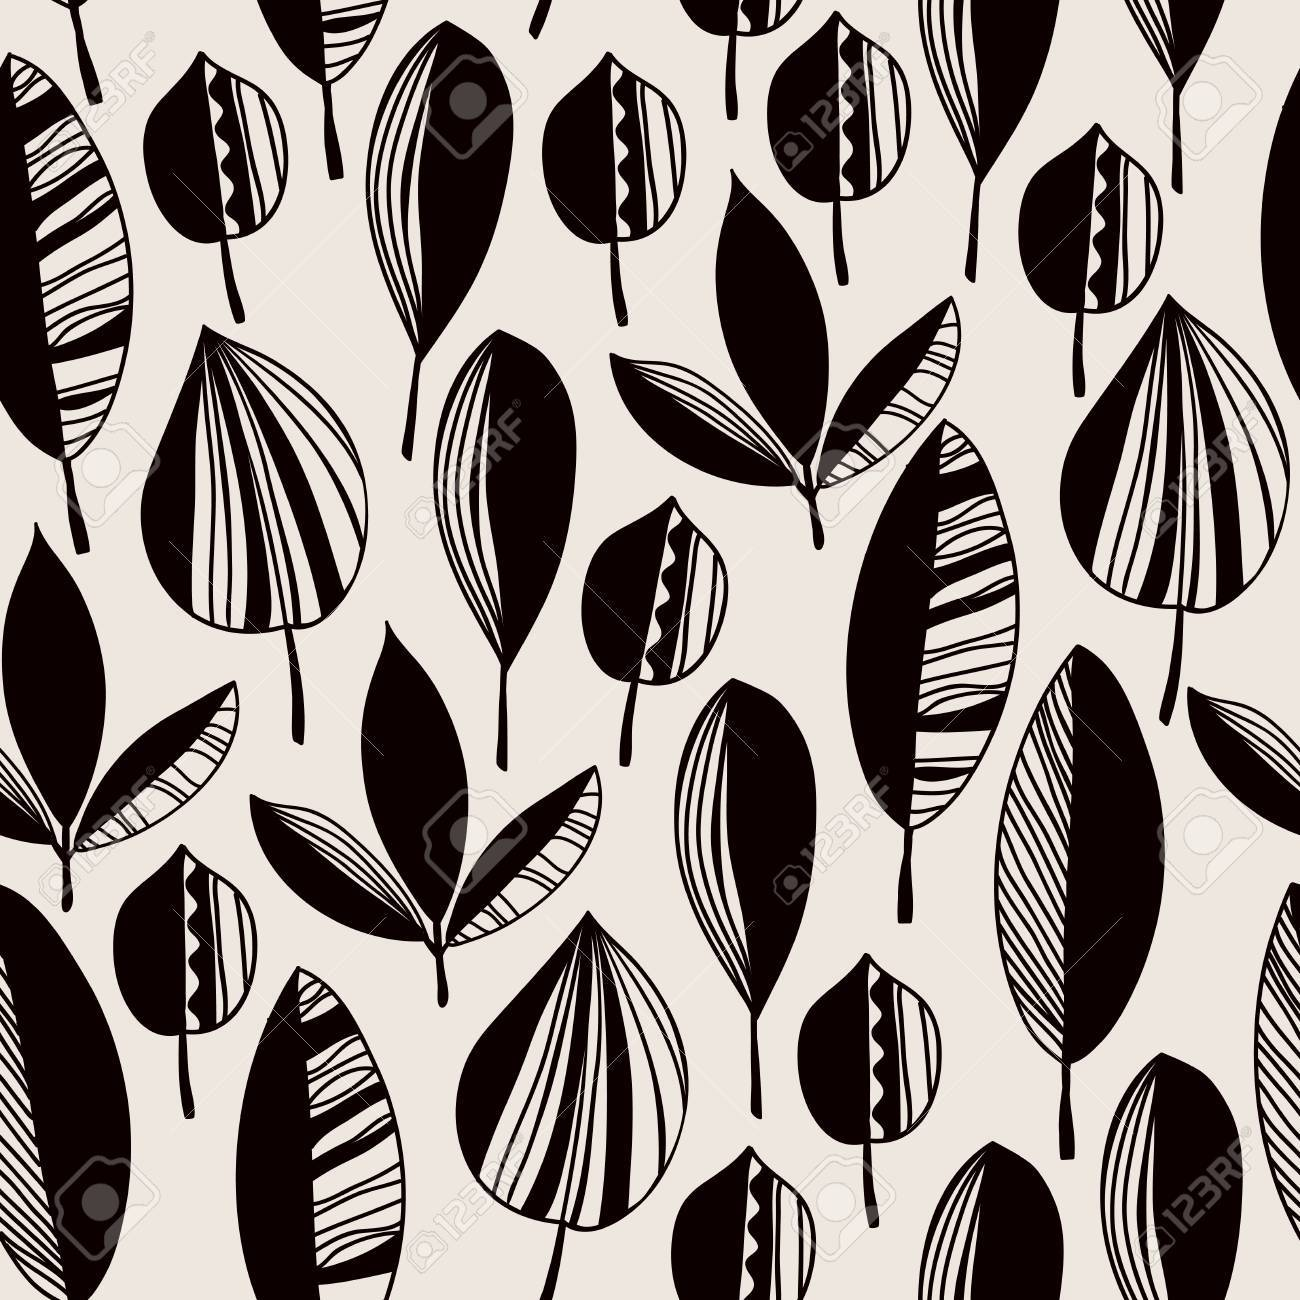 Graphic black and white endless texture with ornamental leaves Stock Vector - 22601696